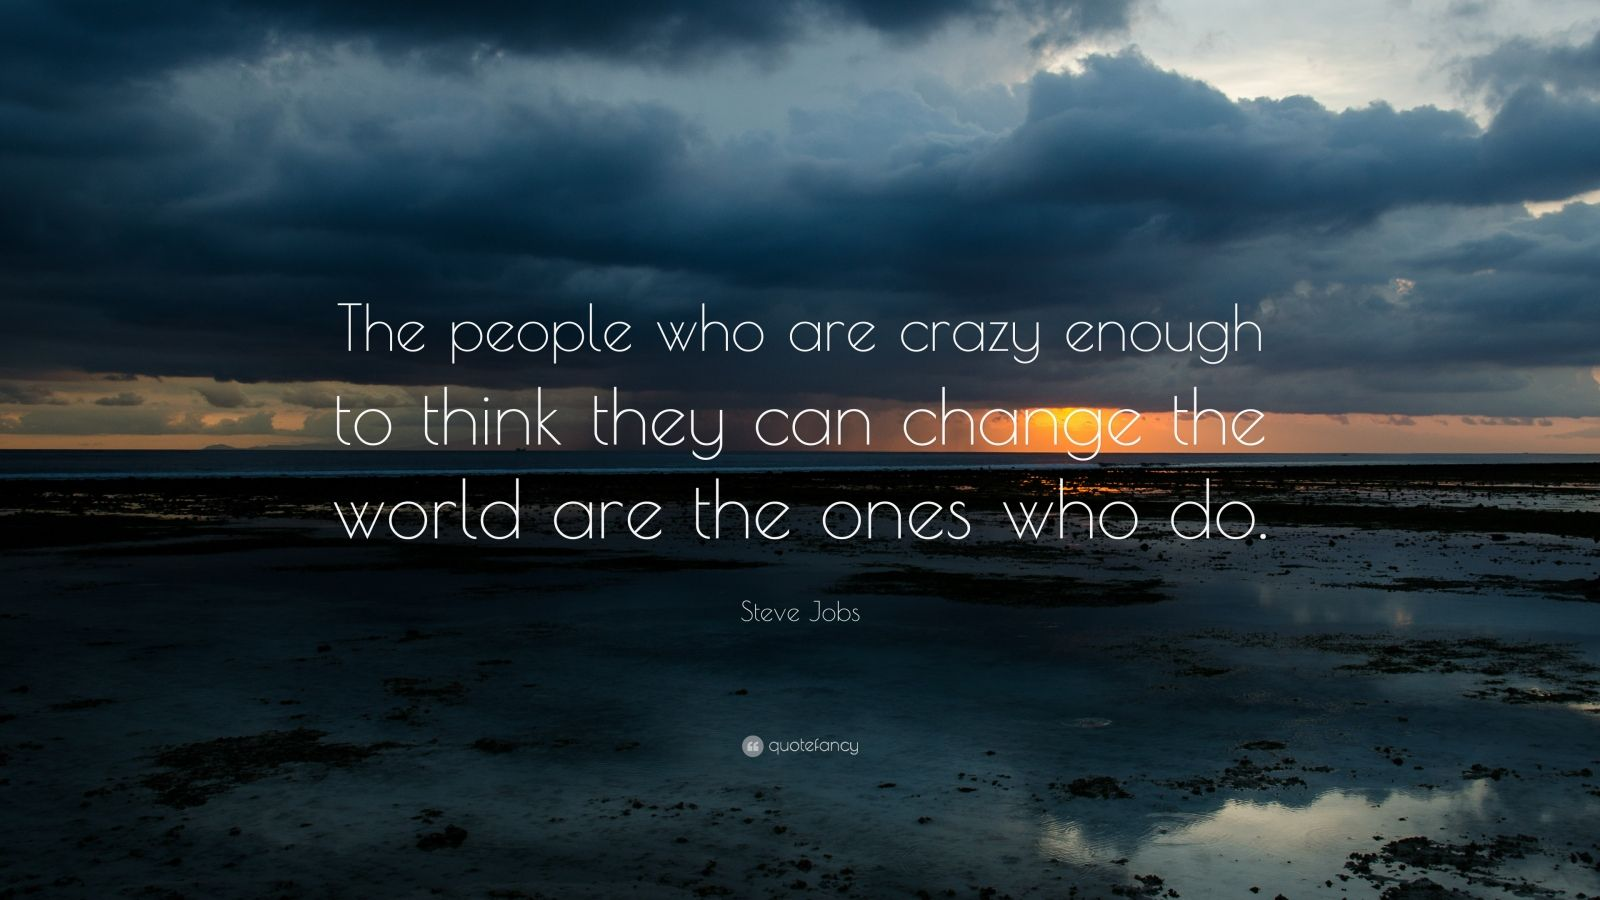 Steve Jobs Quote The People Who Are Crazy Enough To Think They Can